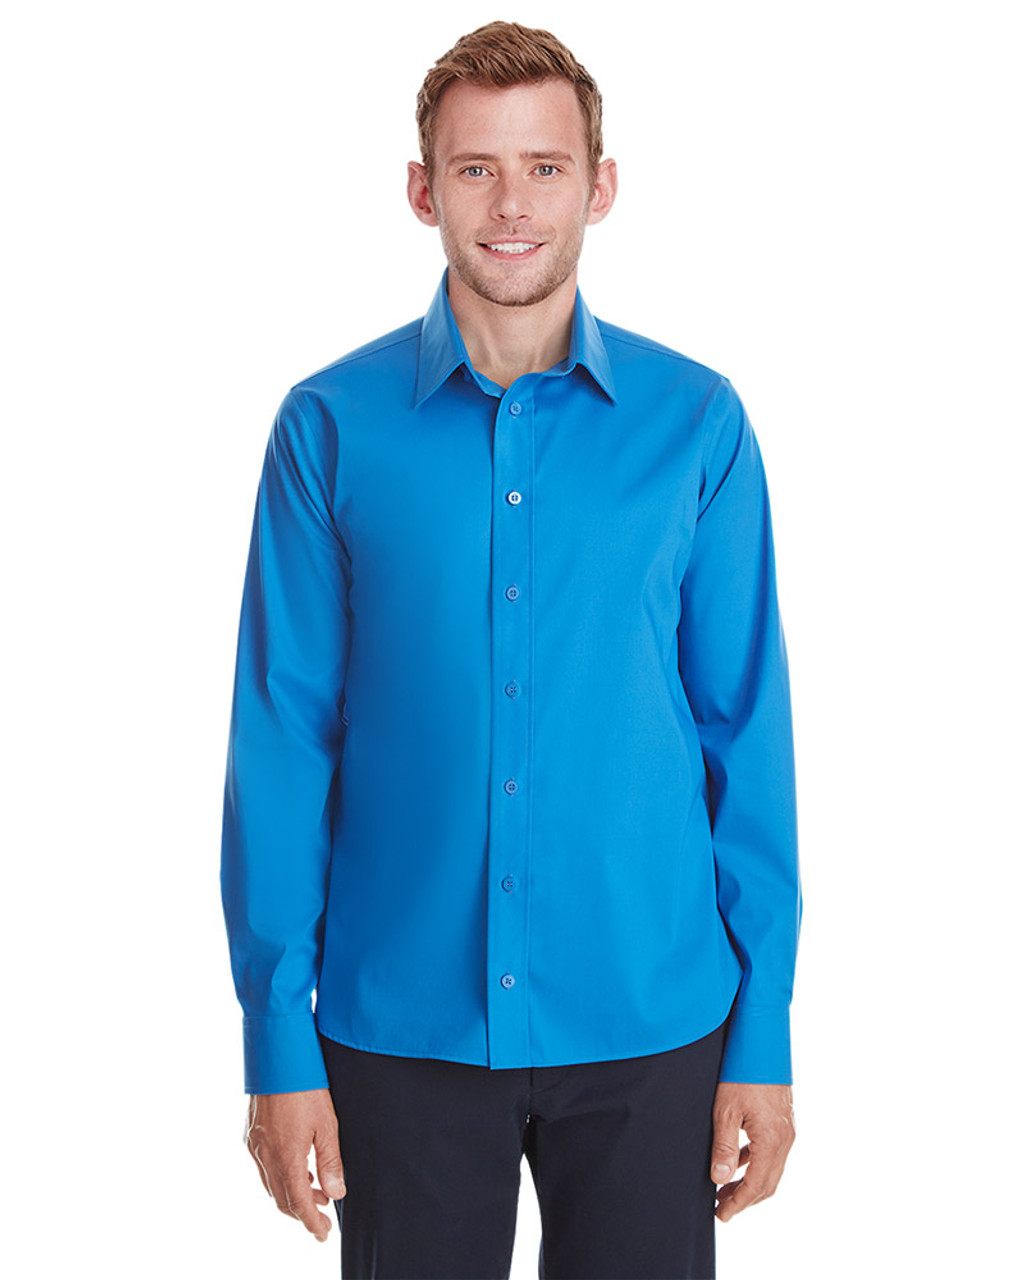 French Blue - DG561 Devon & Jones Men's Crown Collection™ Stretch Broadcloth Untucked Shirt | Blankclothing.ca